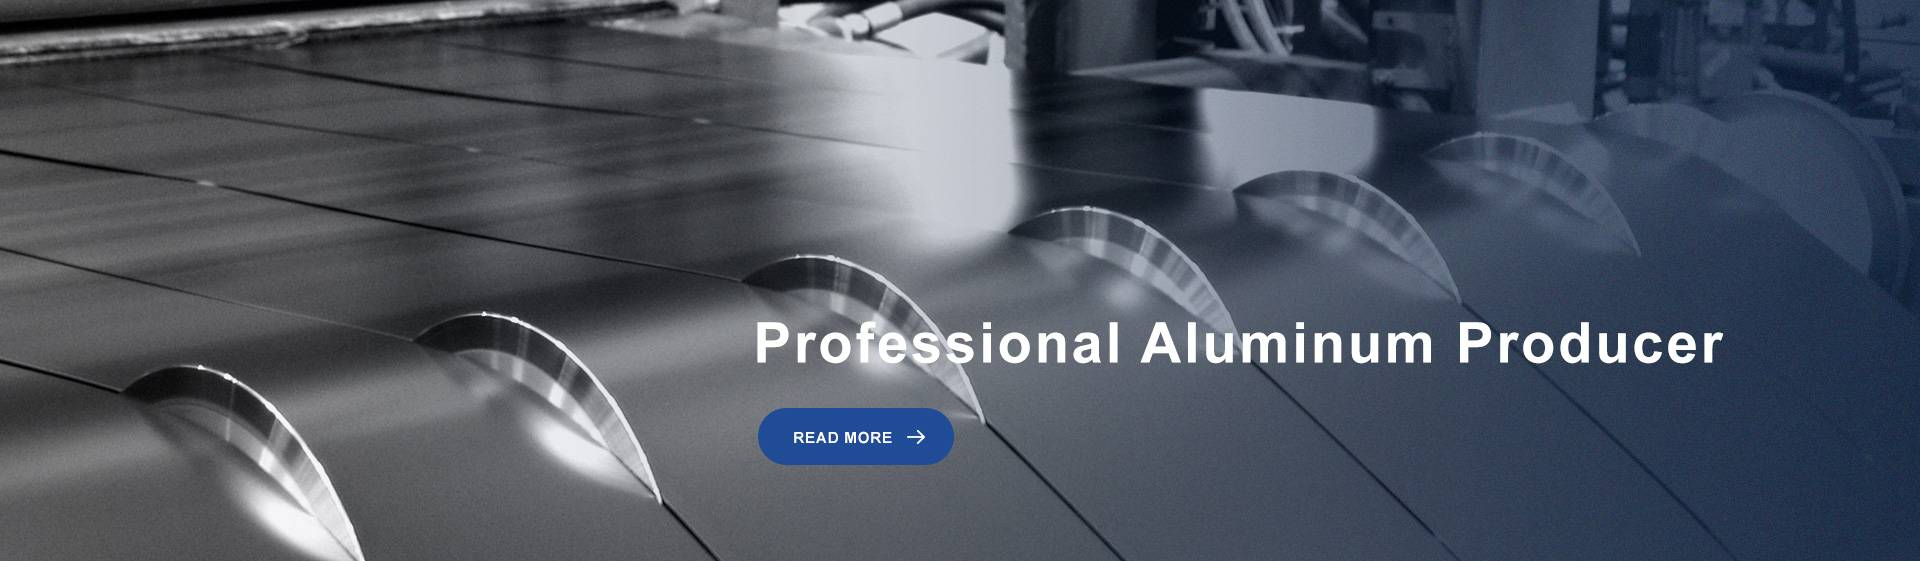 Professional Aluminum Producer